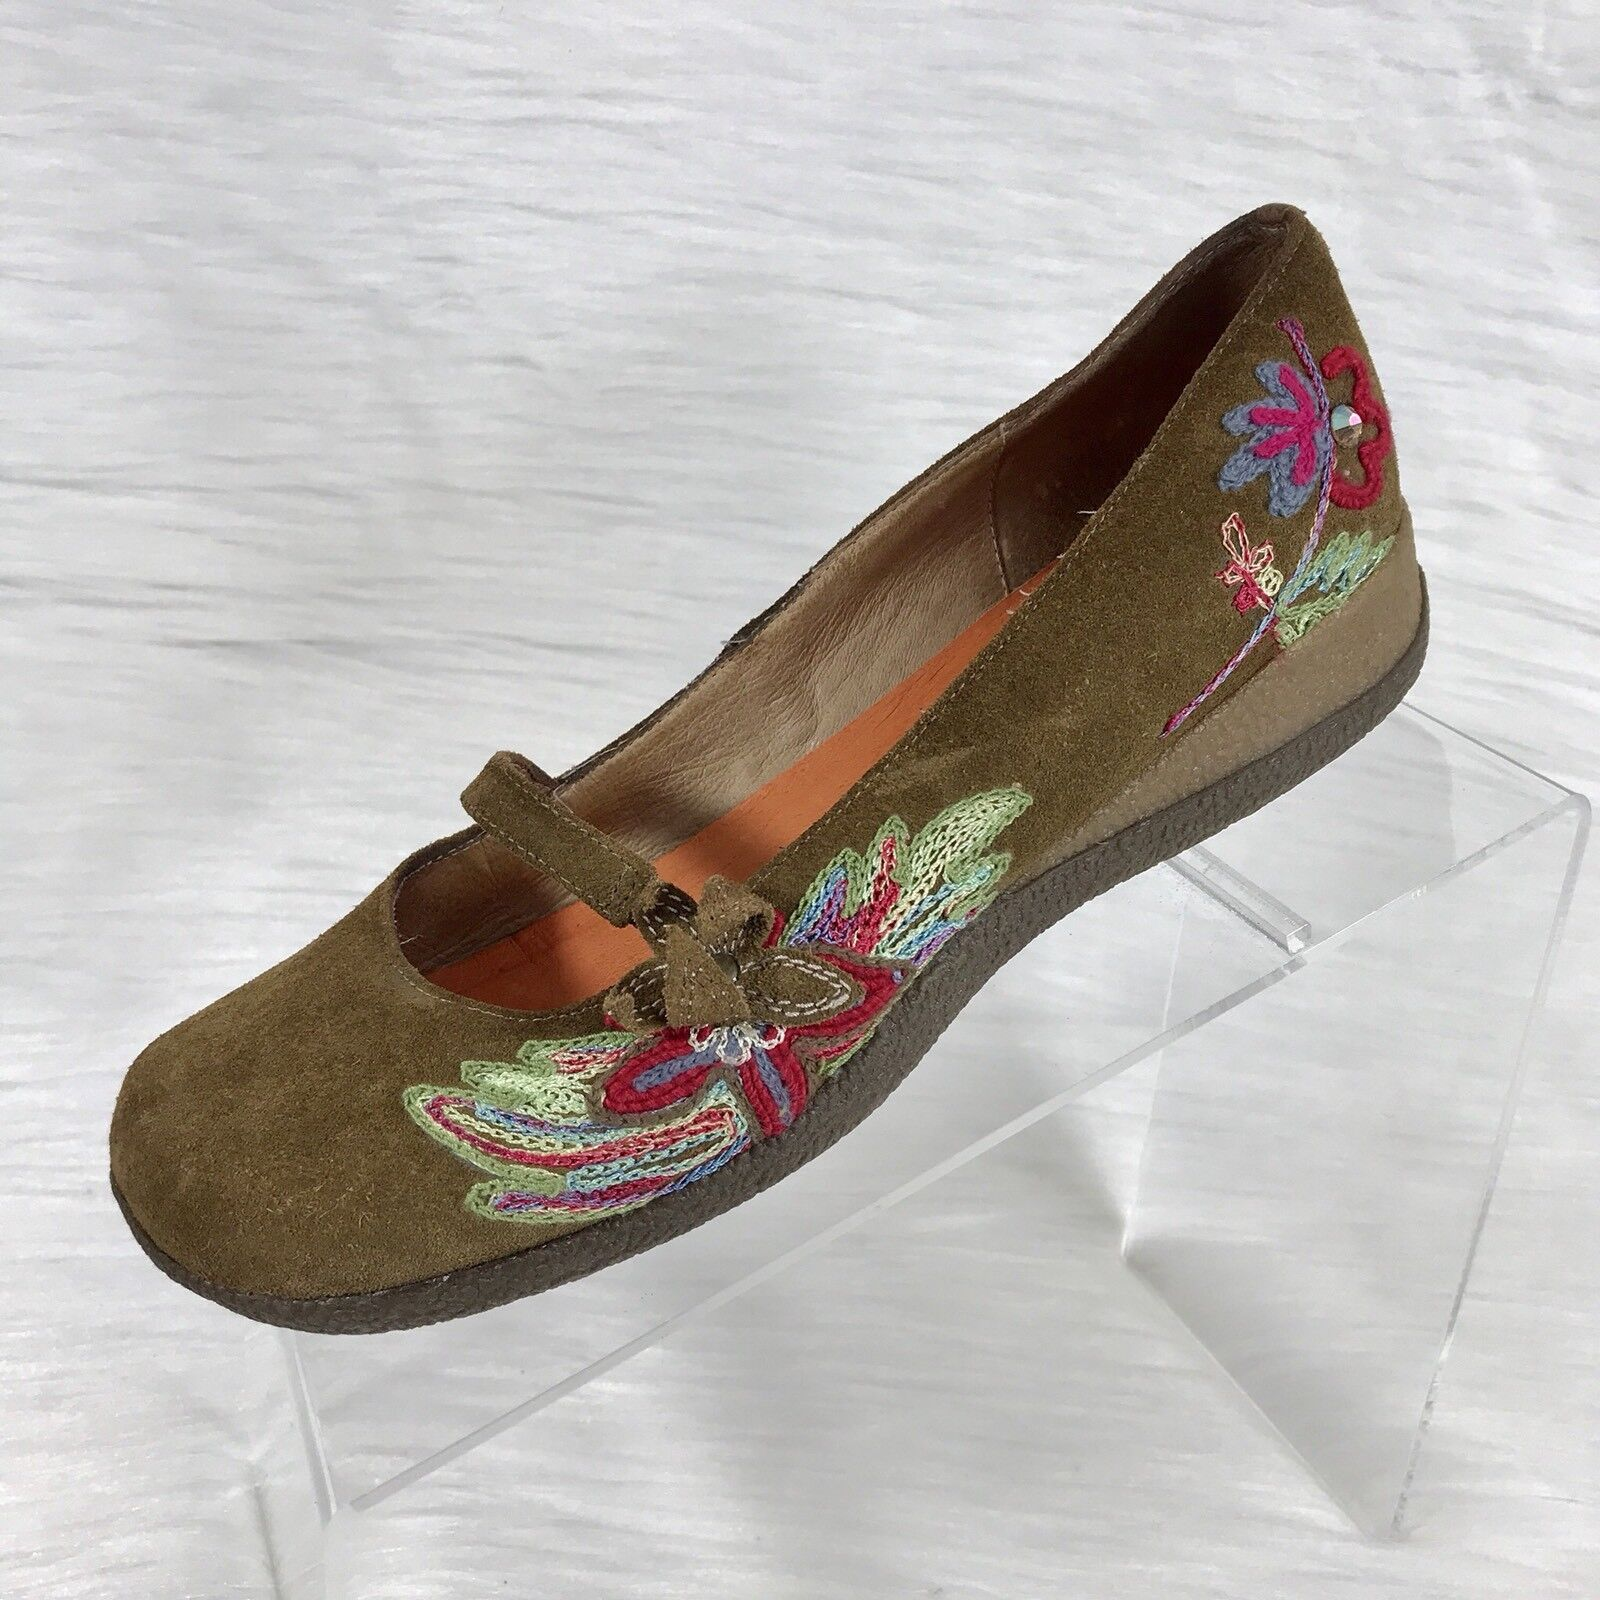 Cafe Noir Donna Mary Jane Shoes Brown Suede 7.5 Floral Size 38 US 7.5 Suede addf5a